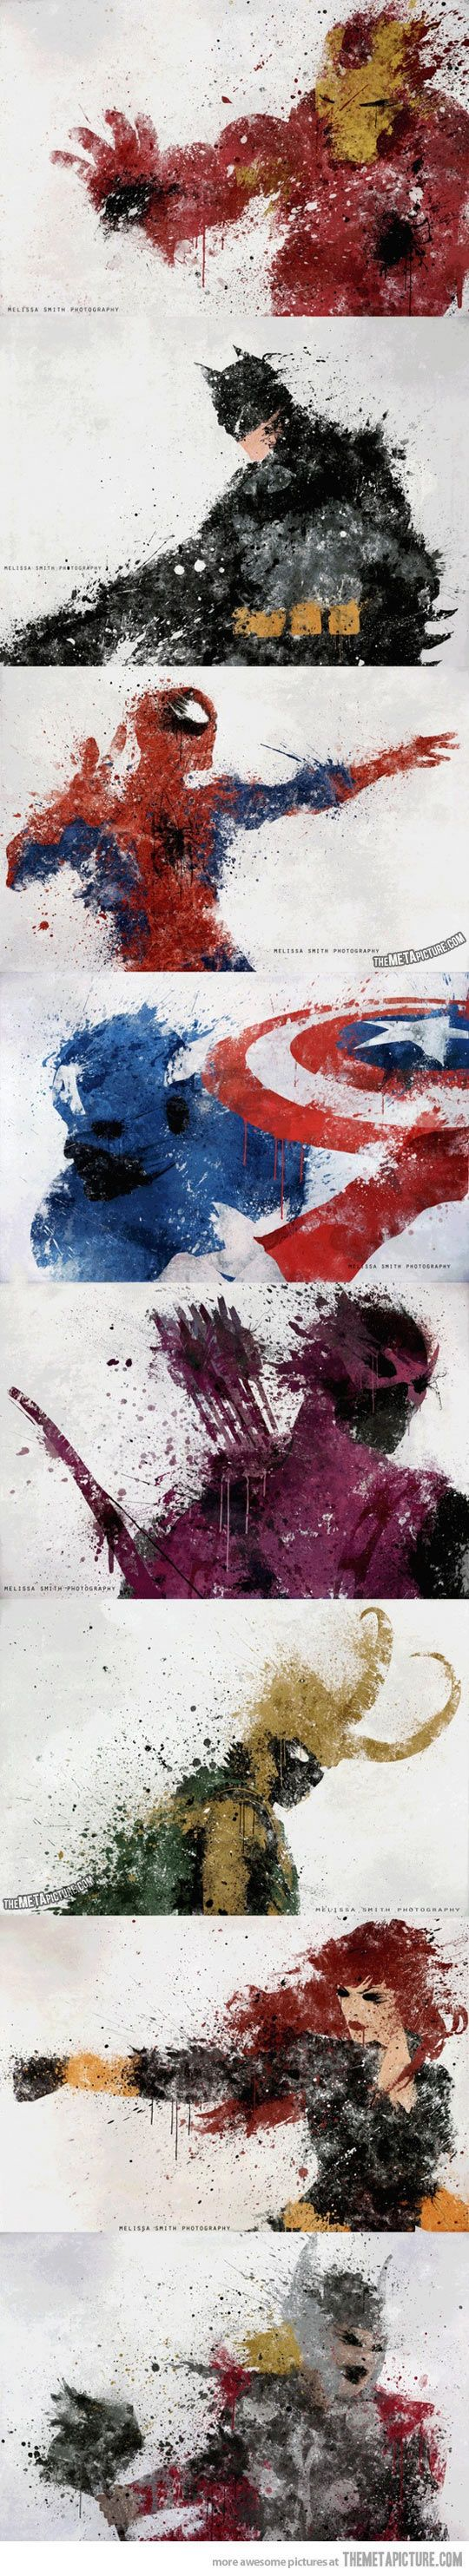 Beautiful Splatters of Superhero Characters… I know batman is dc but there are more marvel characters here than dc.